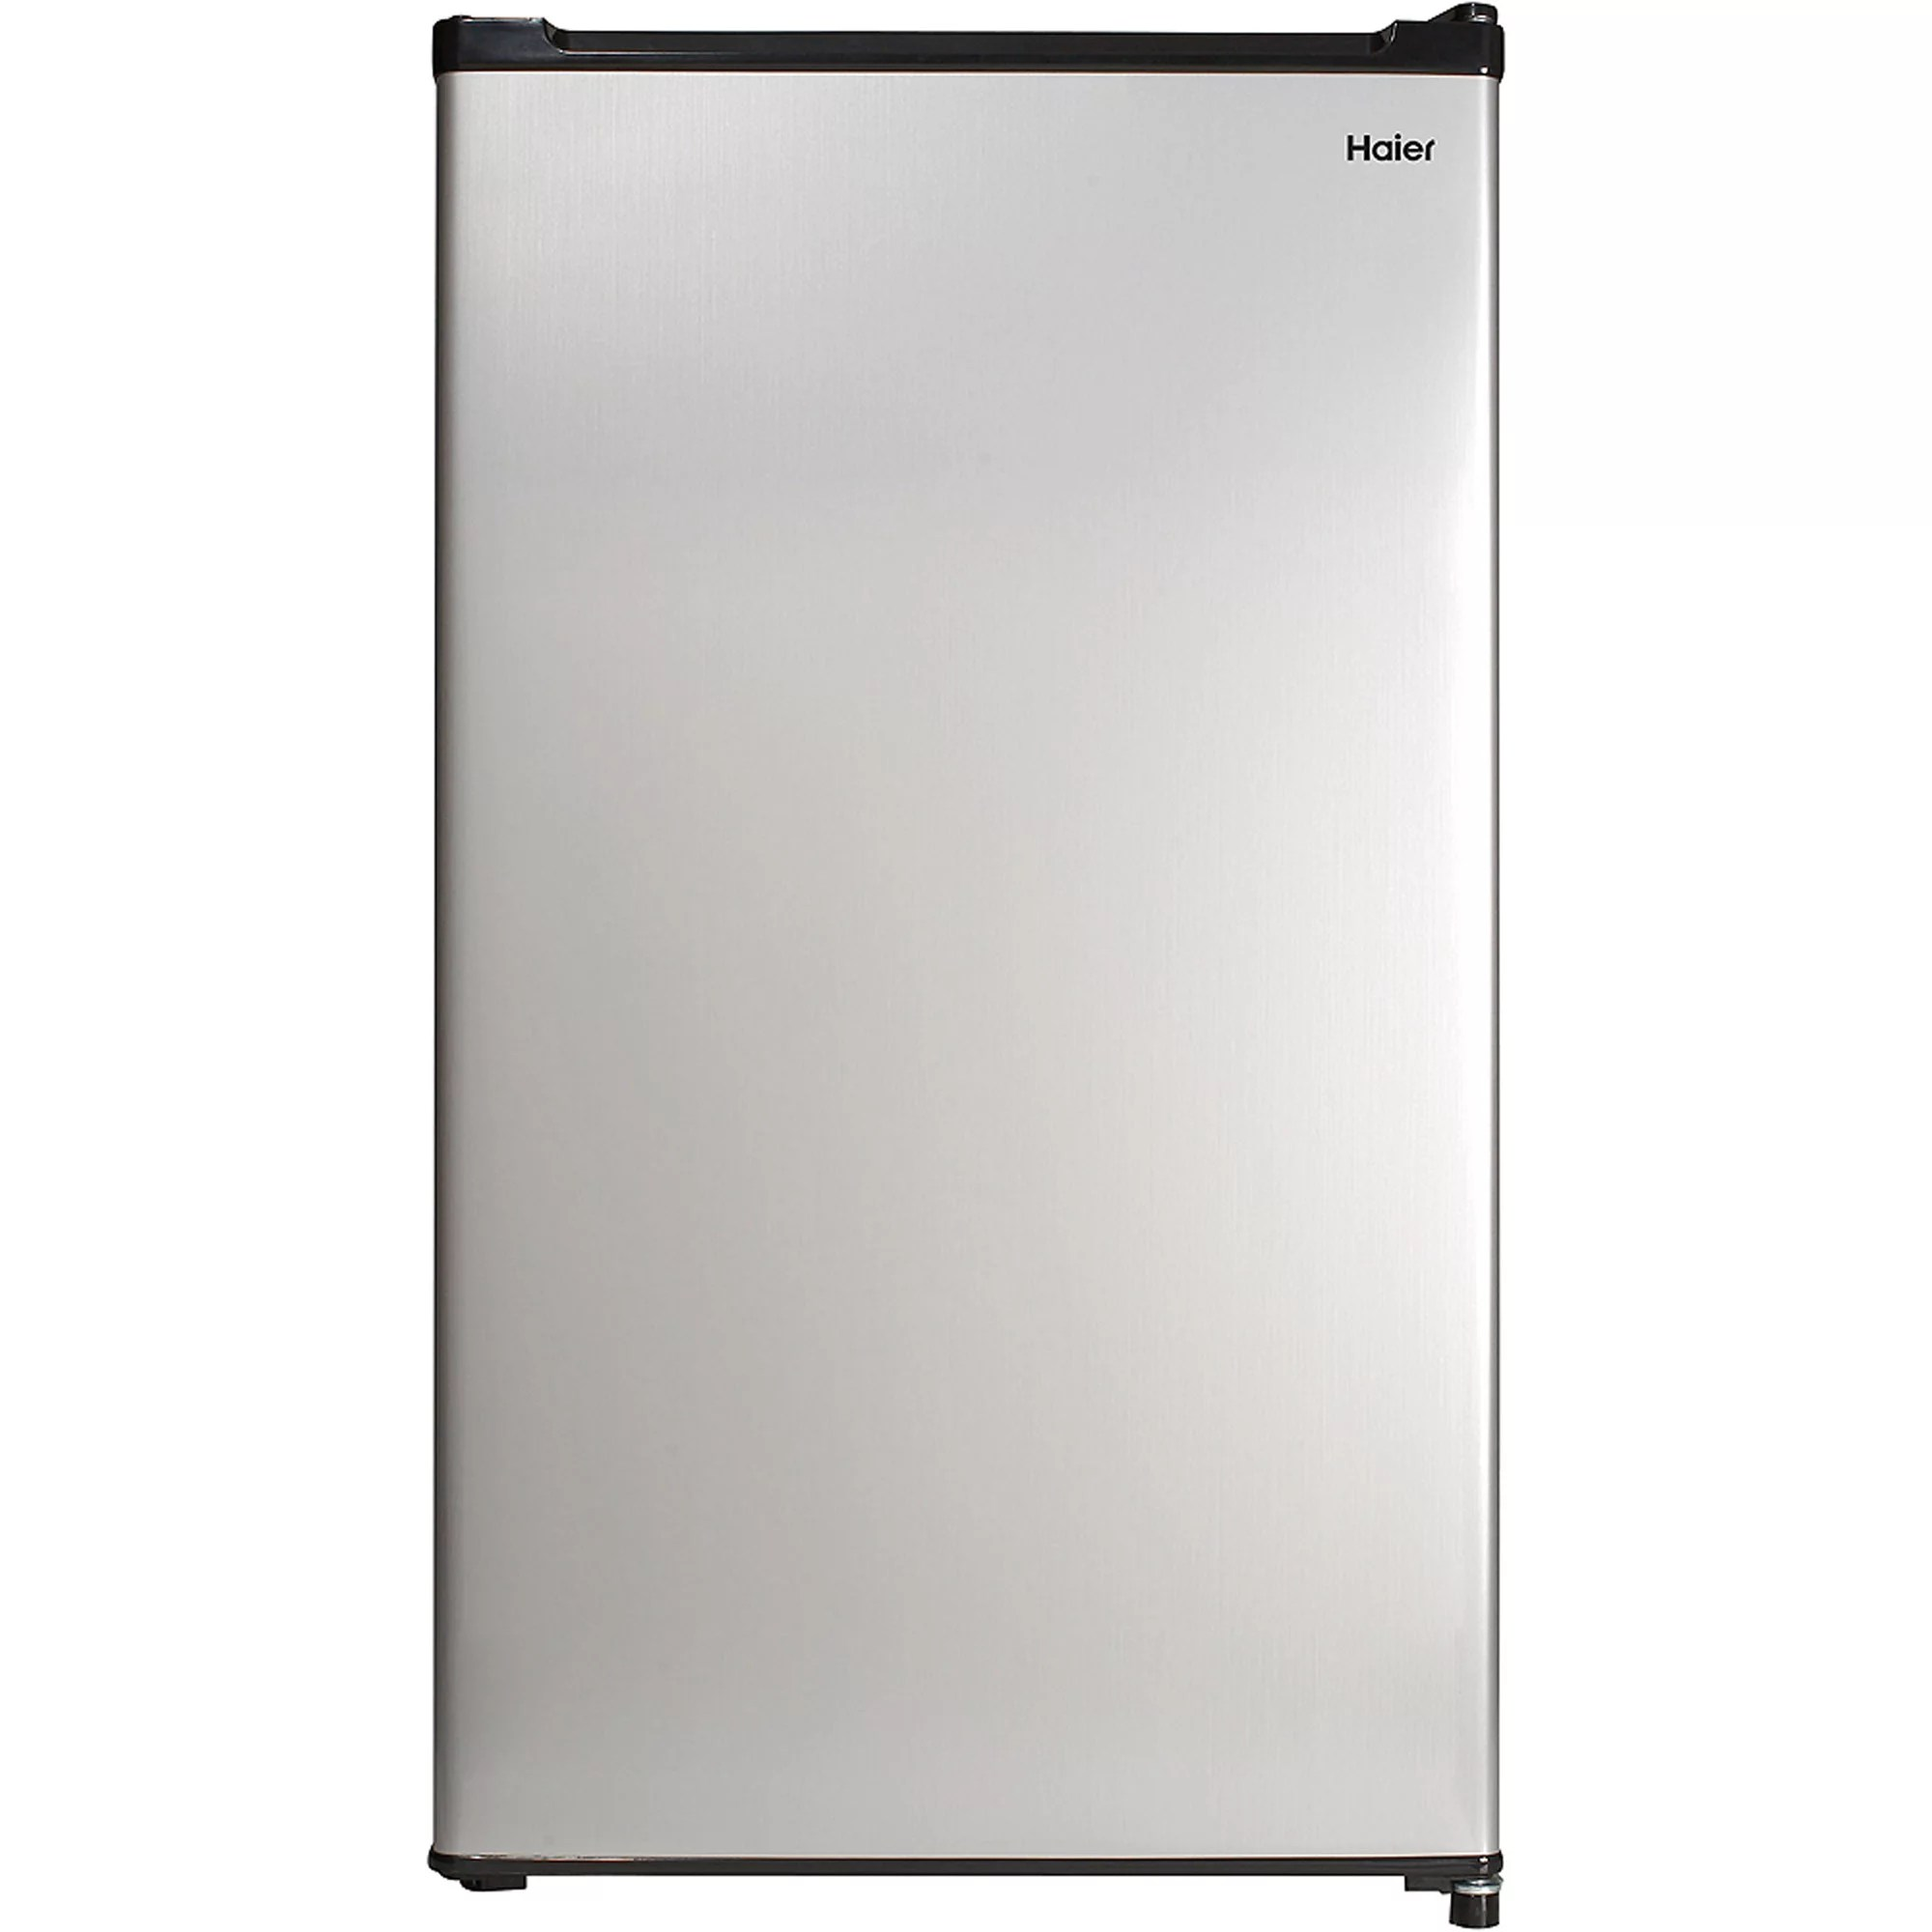 New Refrigerator Price Haier 3 2 Cu Ft Two Door Refrigerator With Freezer Hc32tw10sv Black